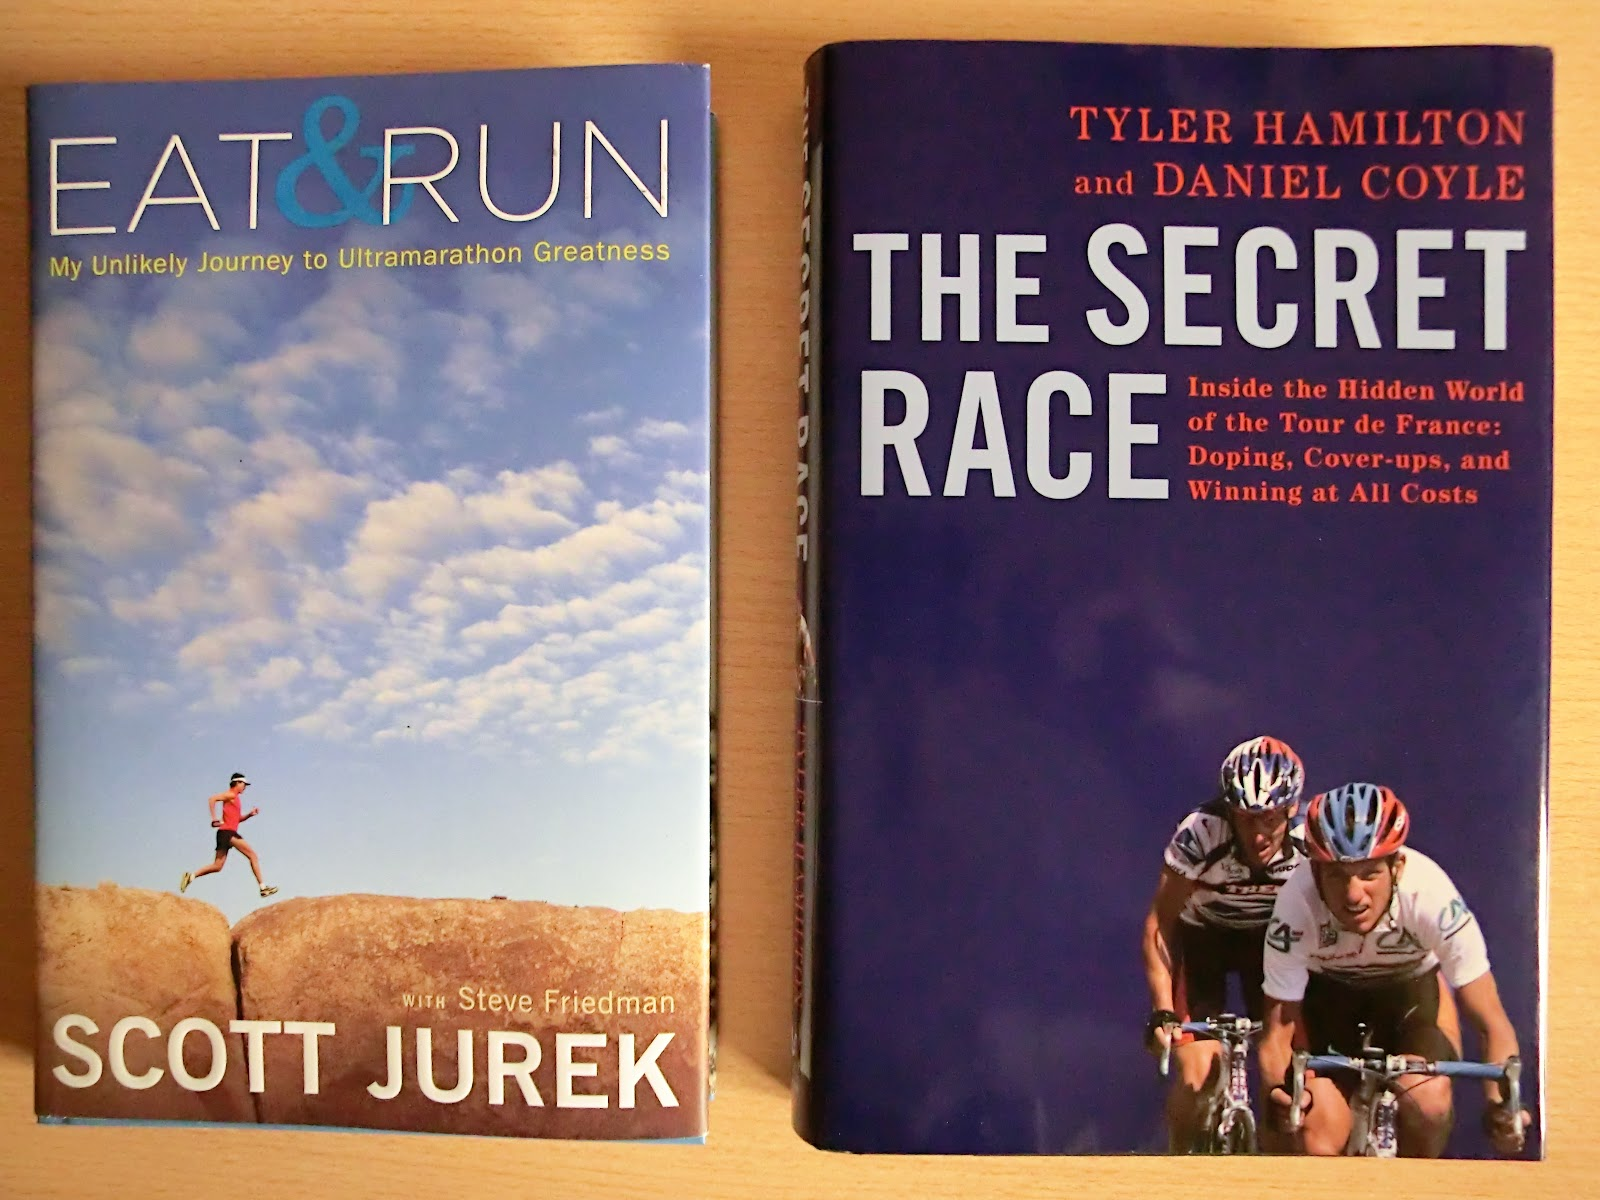 Lance Armstrong Libros La Tortuga Holandesa Libros The Secret Race Eat Run